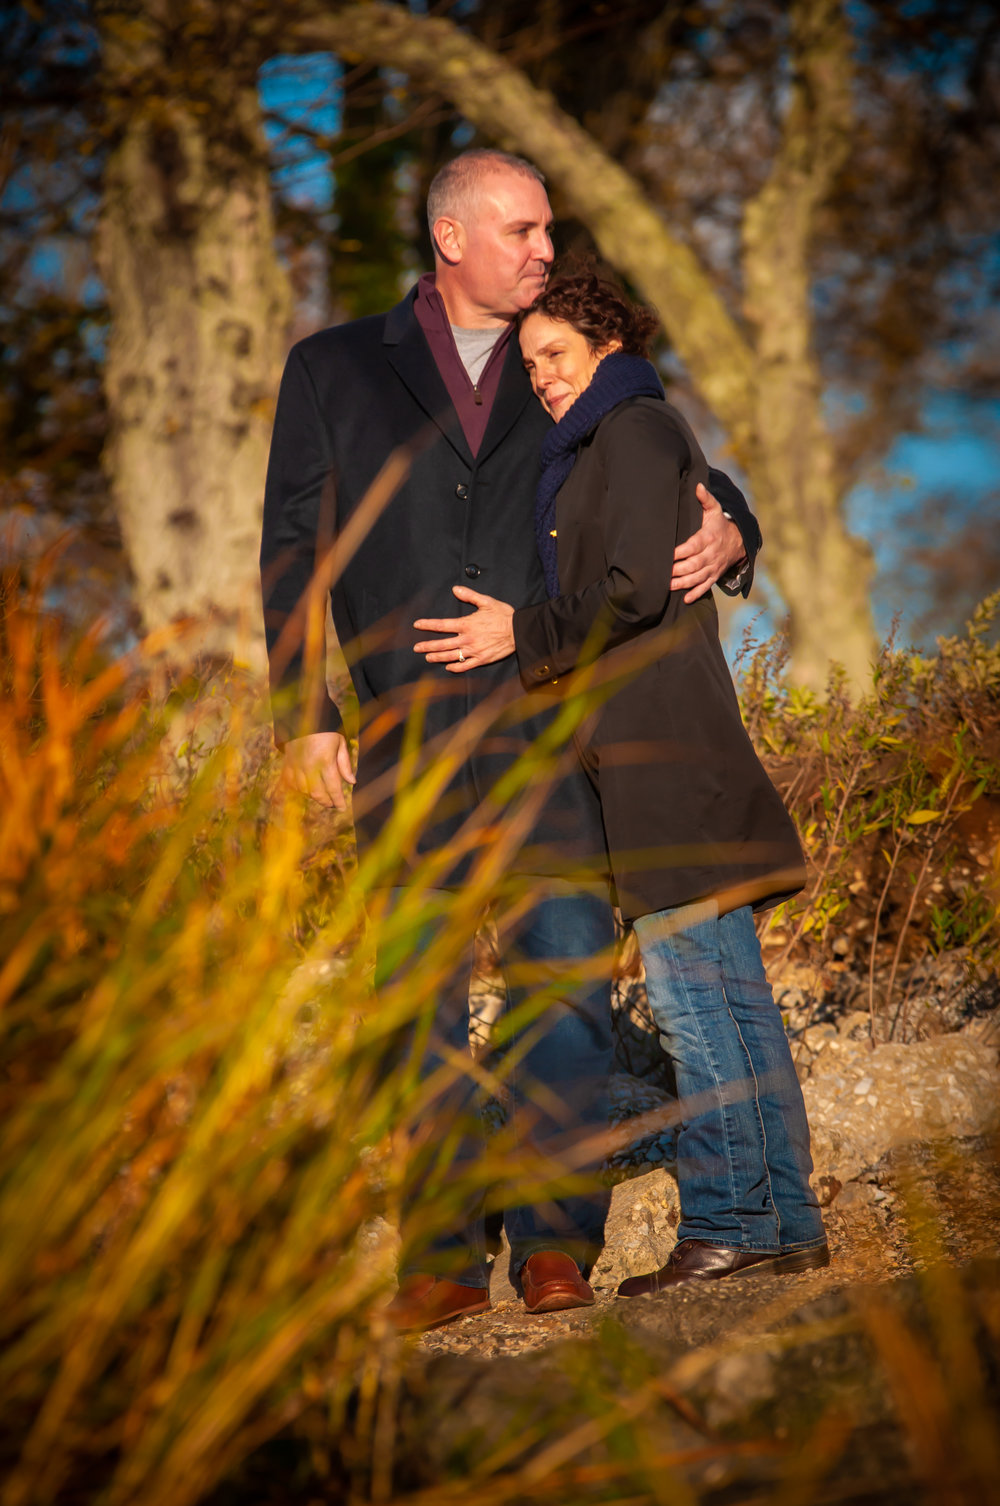 FIneArt_CarrieAnneGonzalez_NYPhotography_CarrieWestonStudios_Portrait_Engagement-5196.jpg